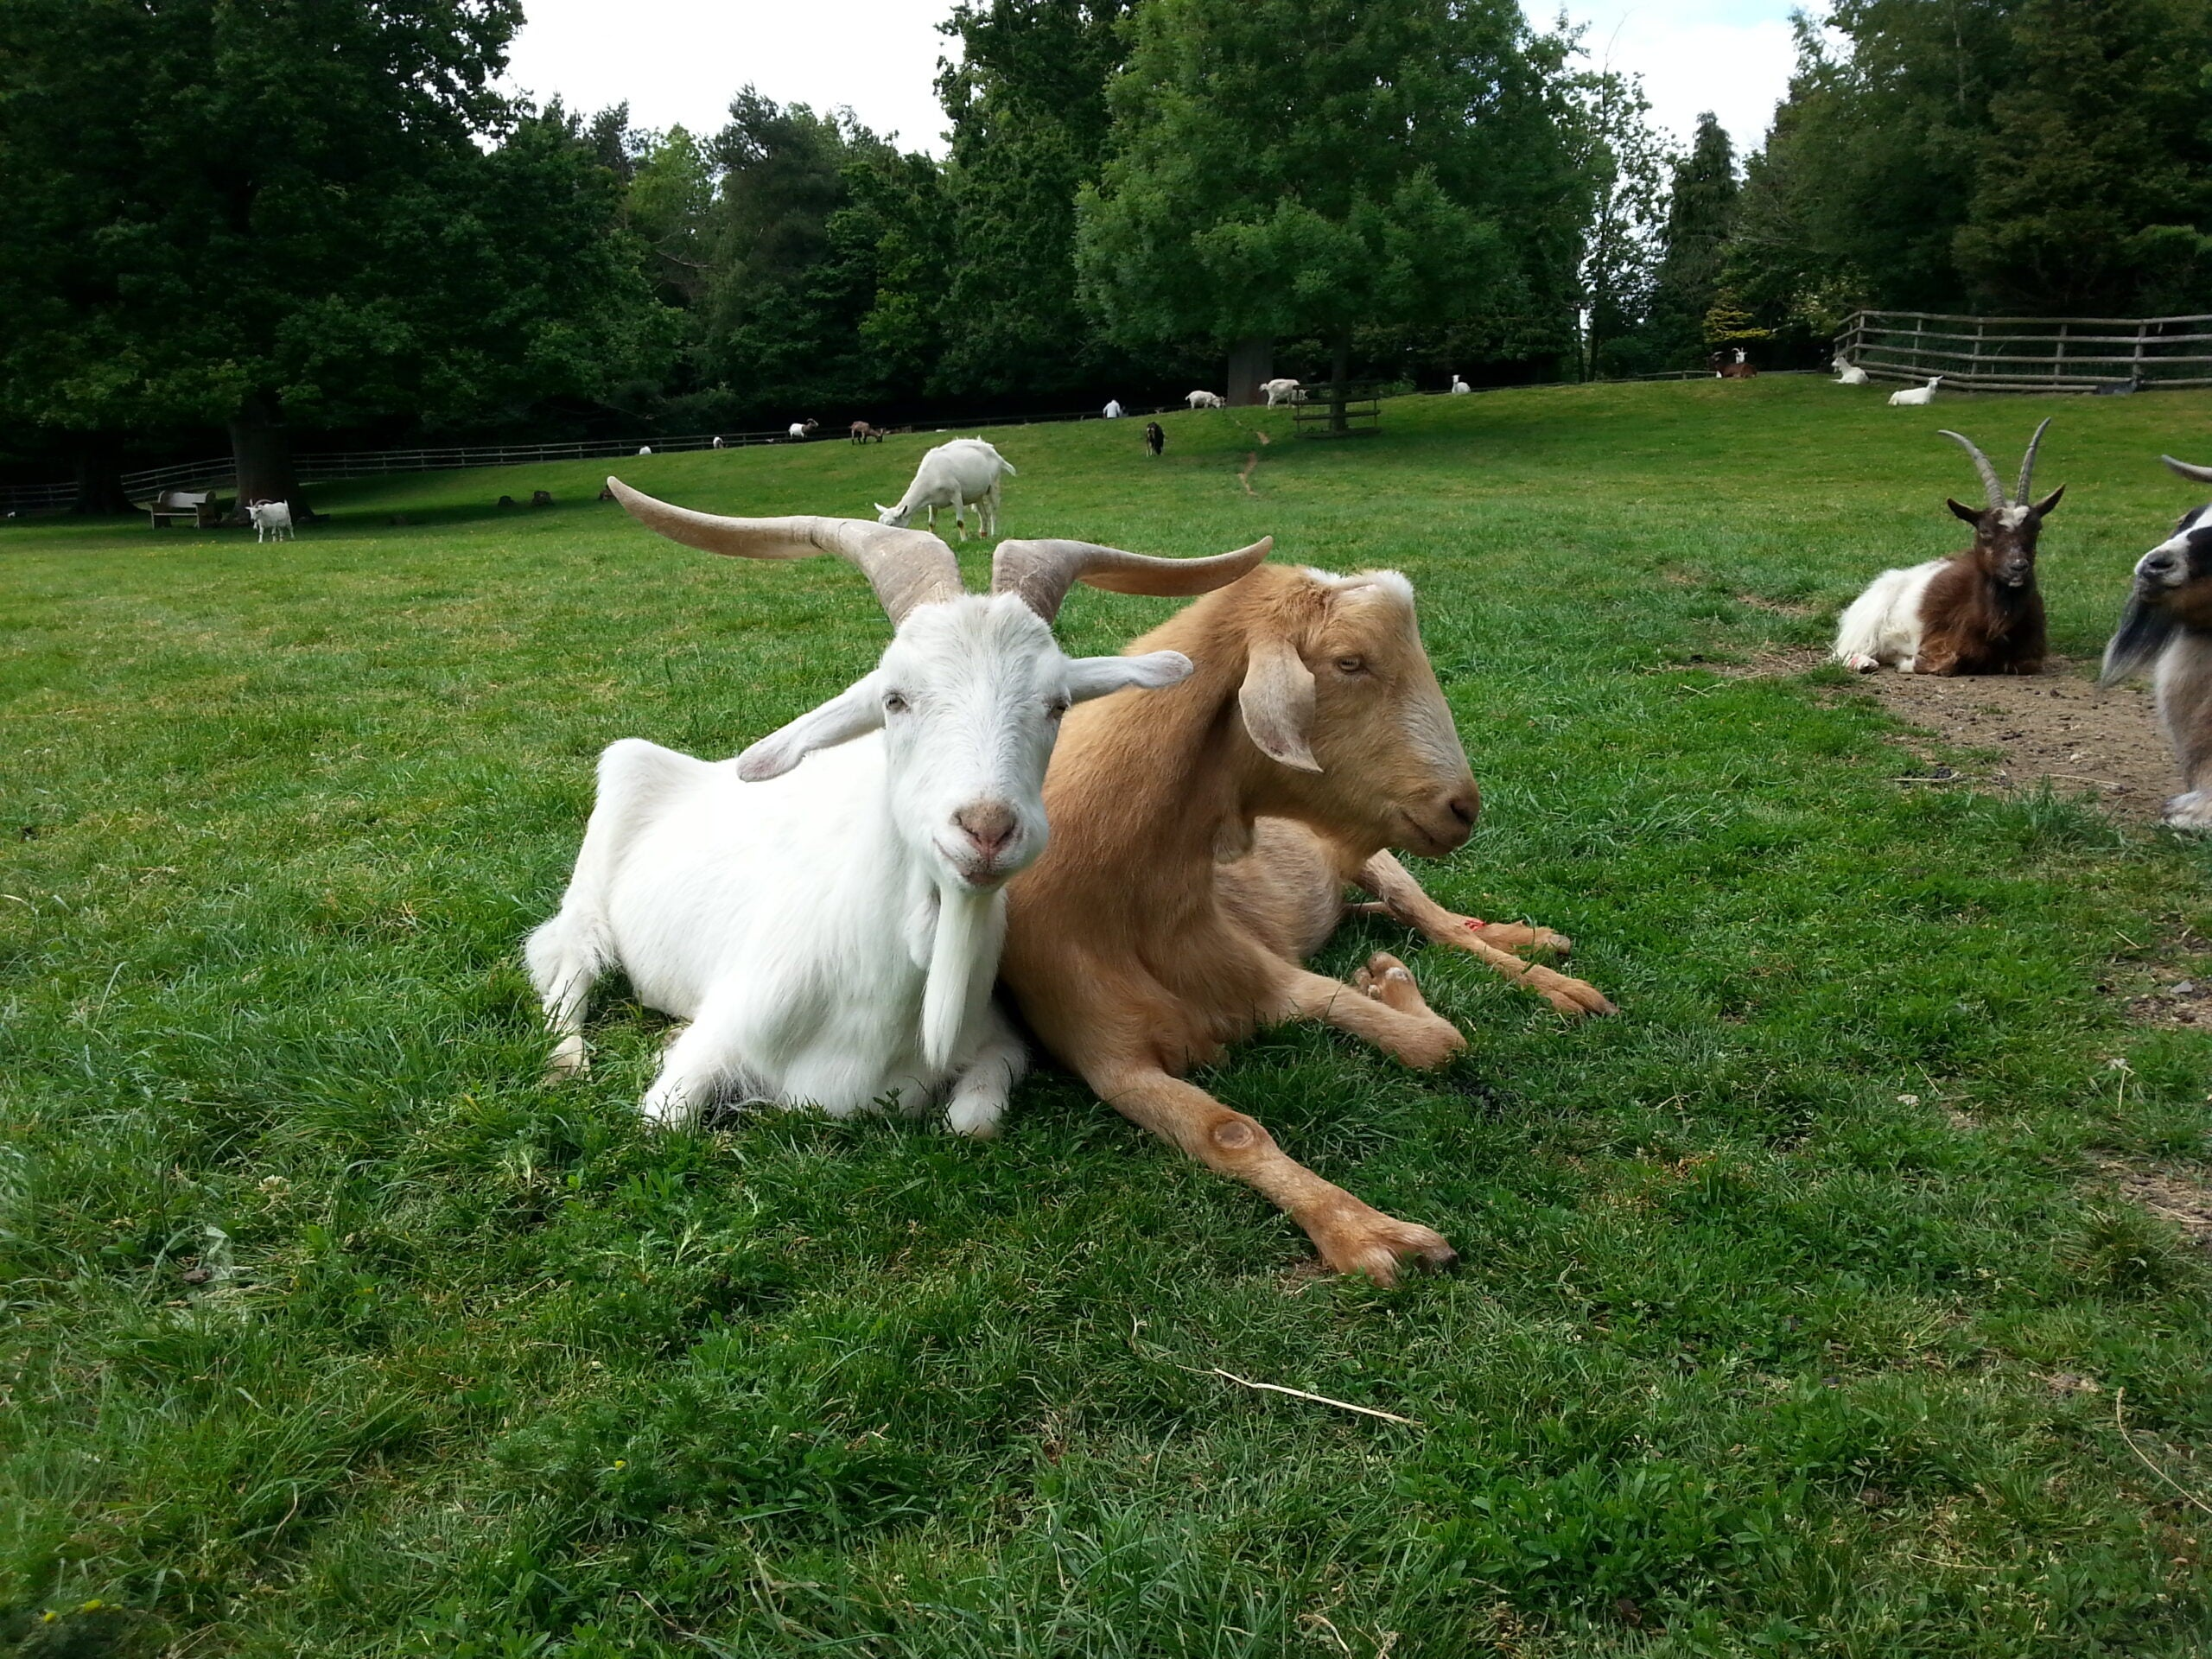 two goats in a field leaning against each other